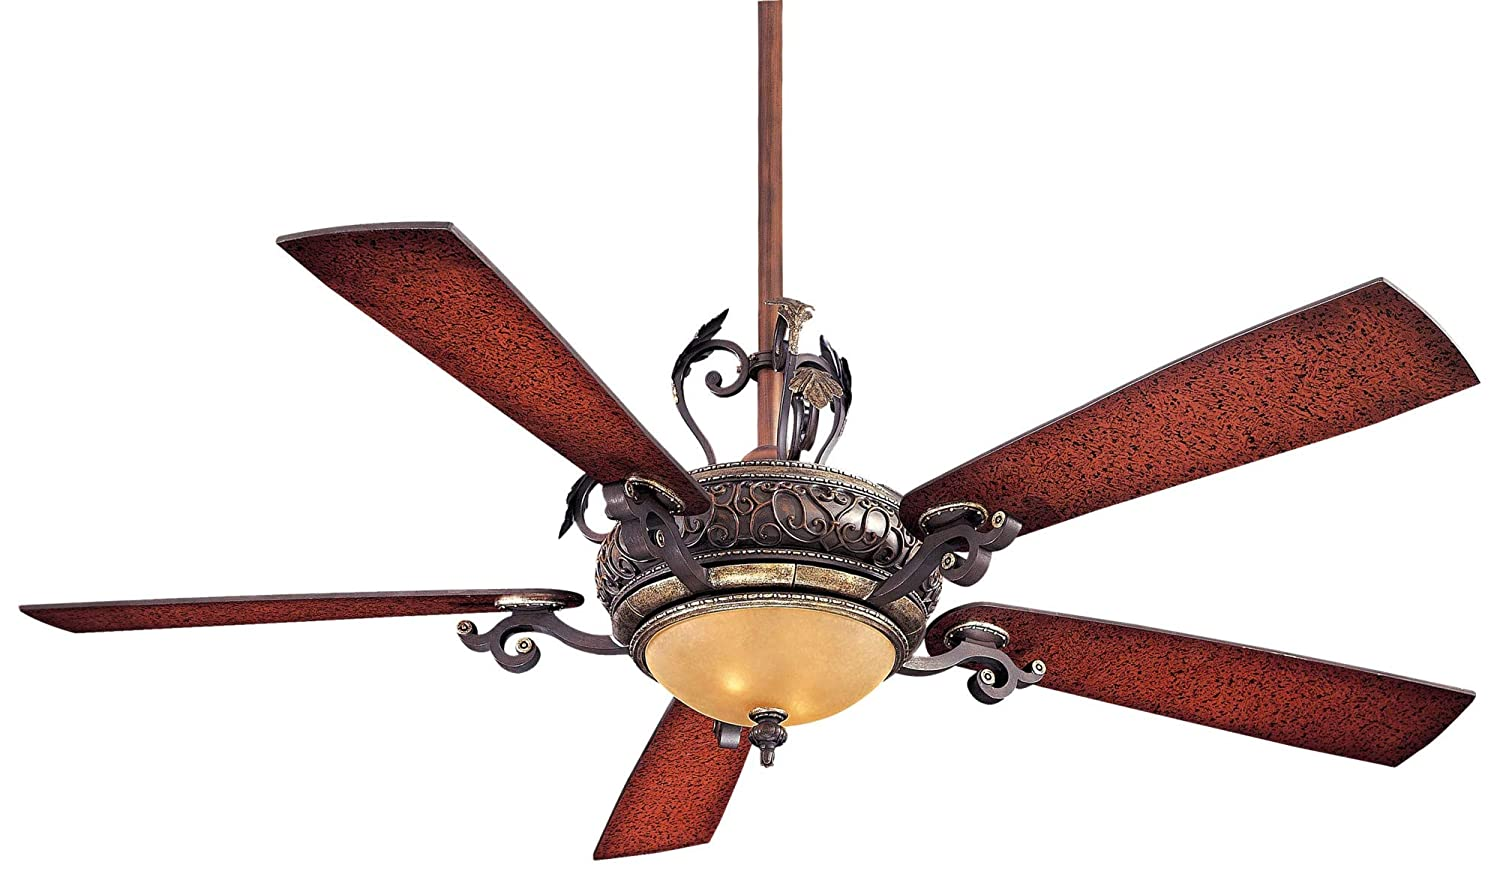 Casablanca Indoor Ceiling Fan with LED Light and remote control – Wisp 52 inch, Nobel Bronze, 59285